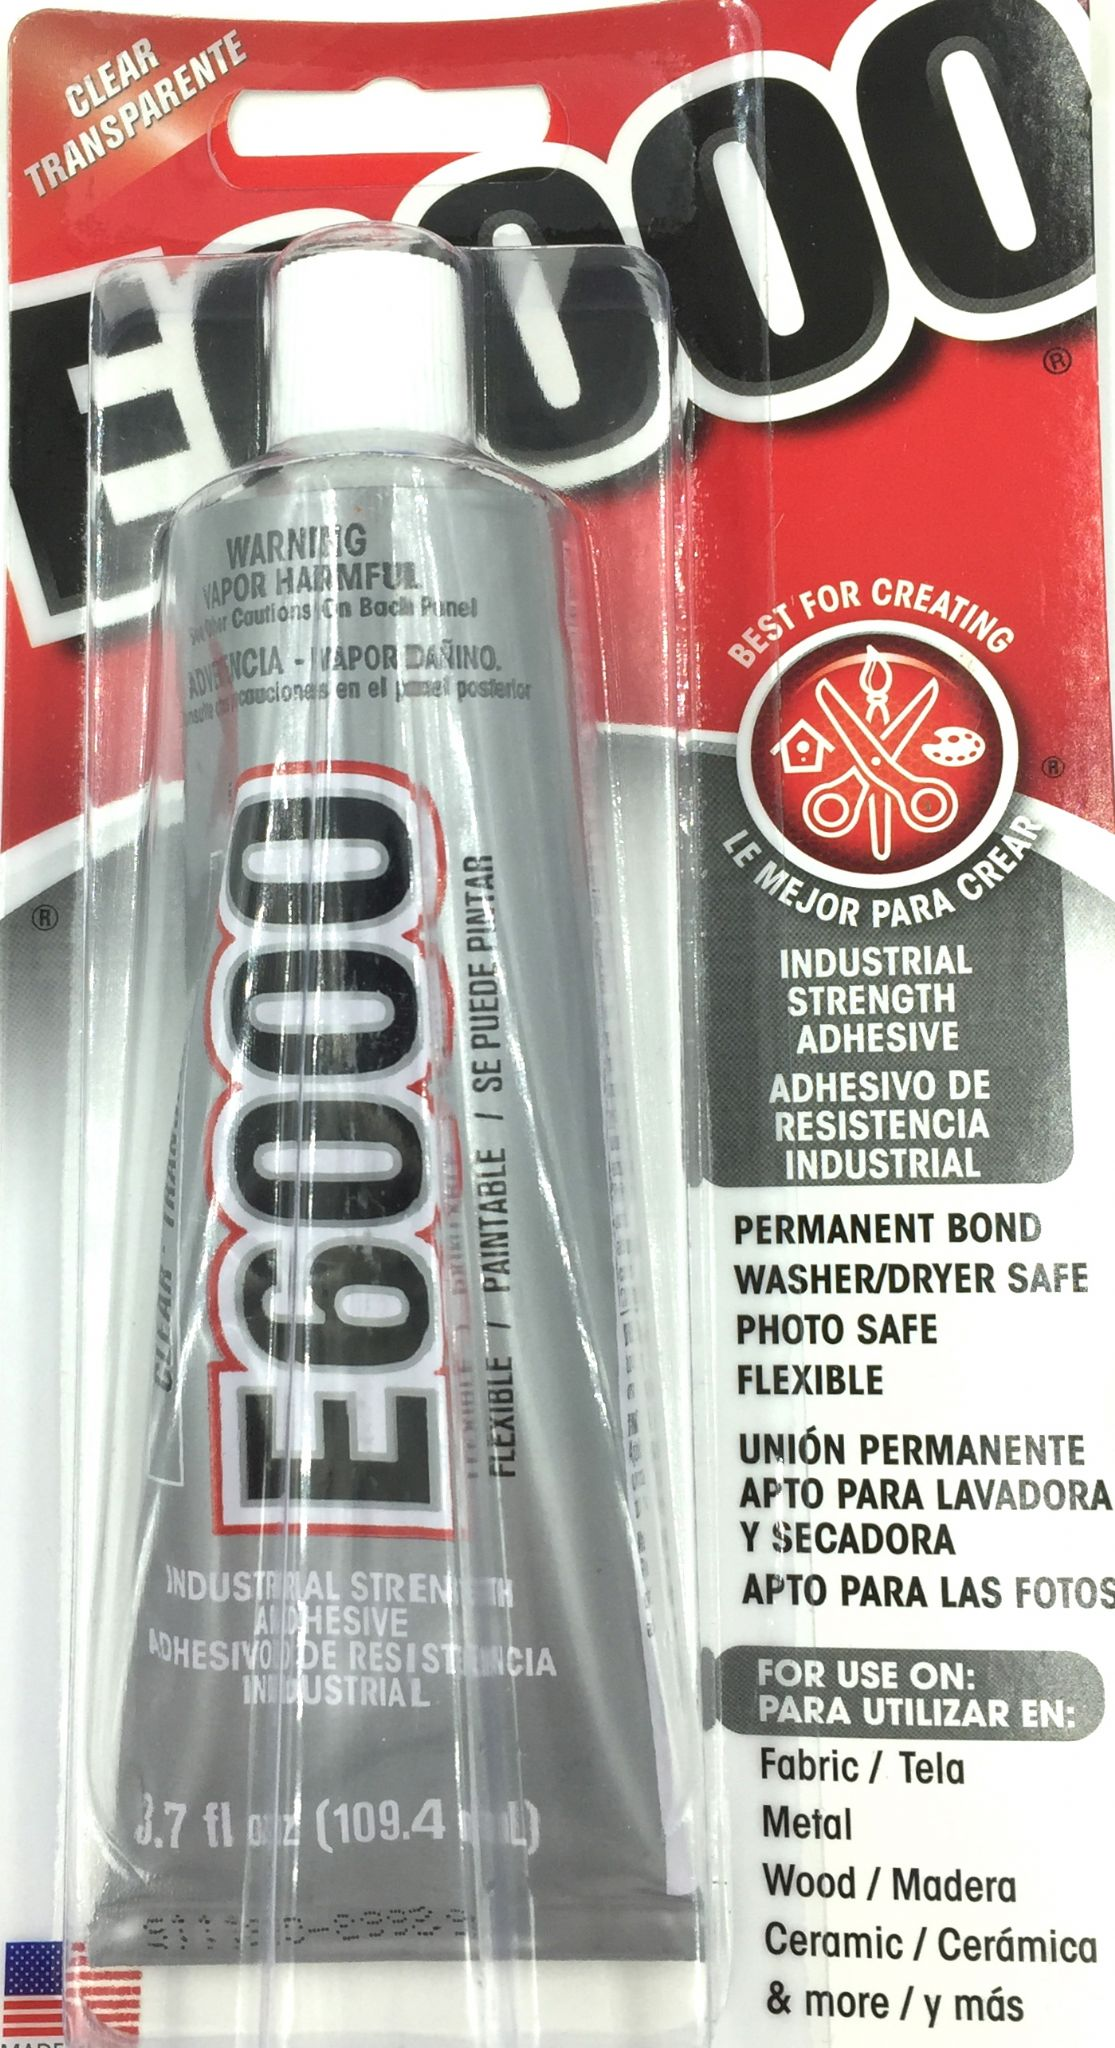 E6000 Jewellery & Craft Glue - Industrial strength - United States - 3.7 fl oz 109.4ml